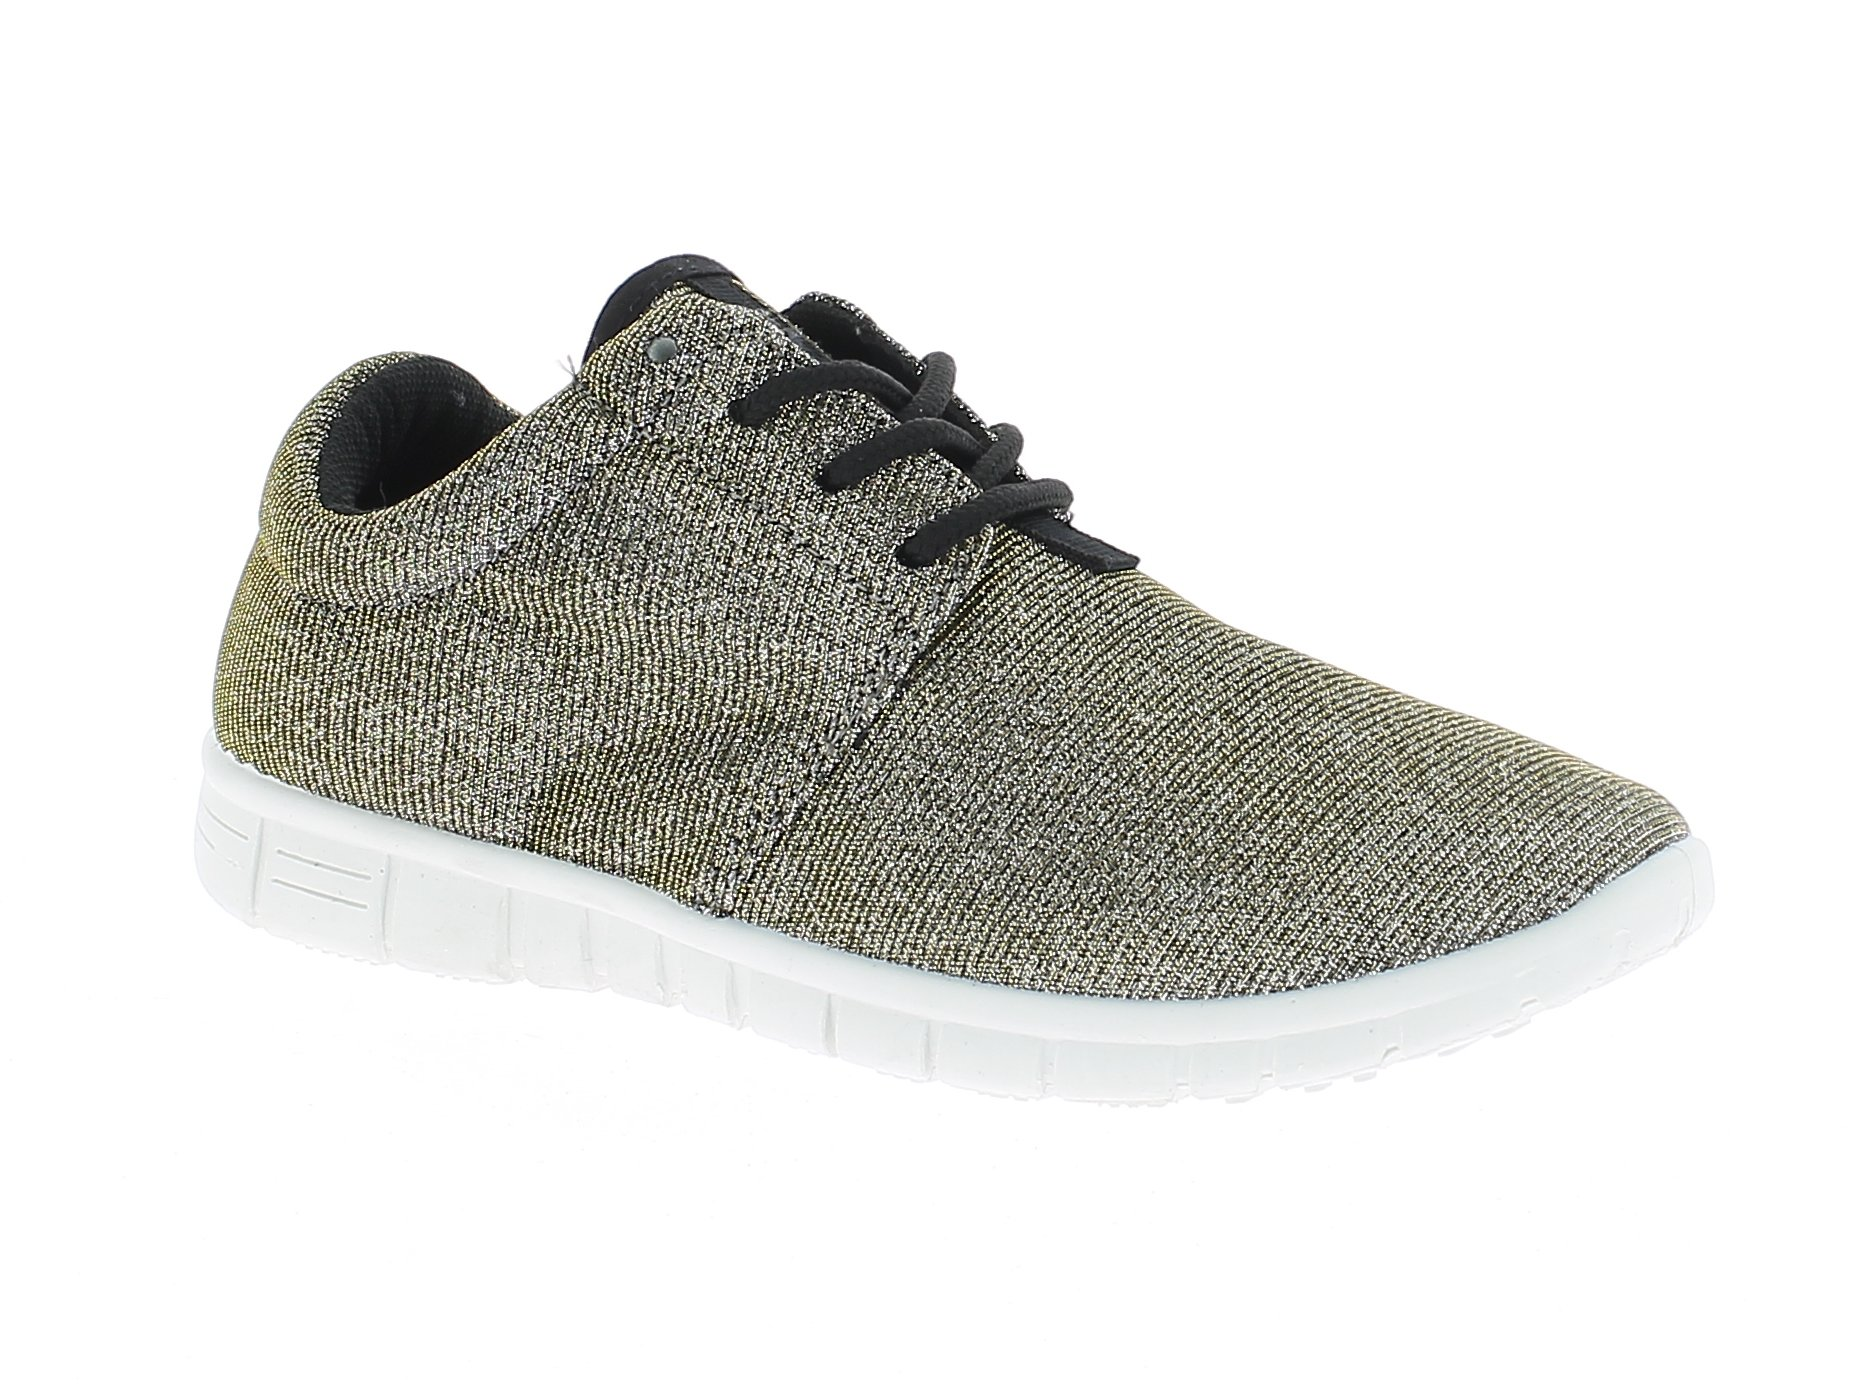 DT. NEW YORK Γυναικείο Casual B411533 Ασημί - IqShoes - B411533 silver 37/1/35/2 παπούτσια  αθλητικά   sneakers